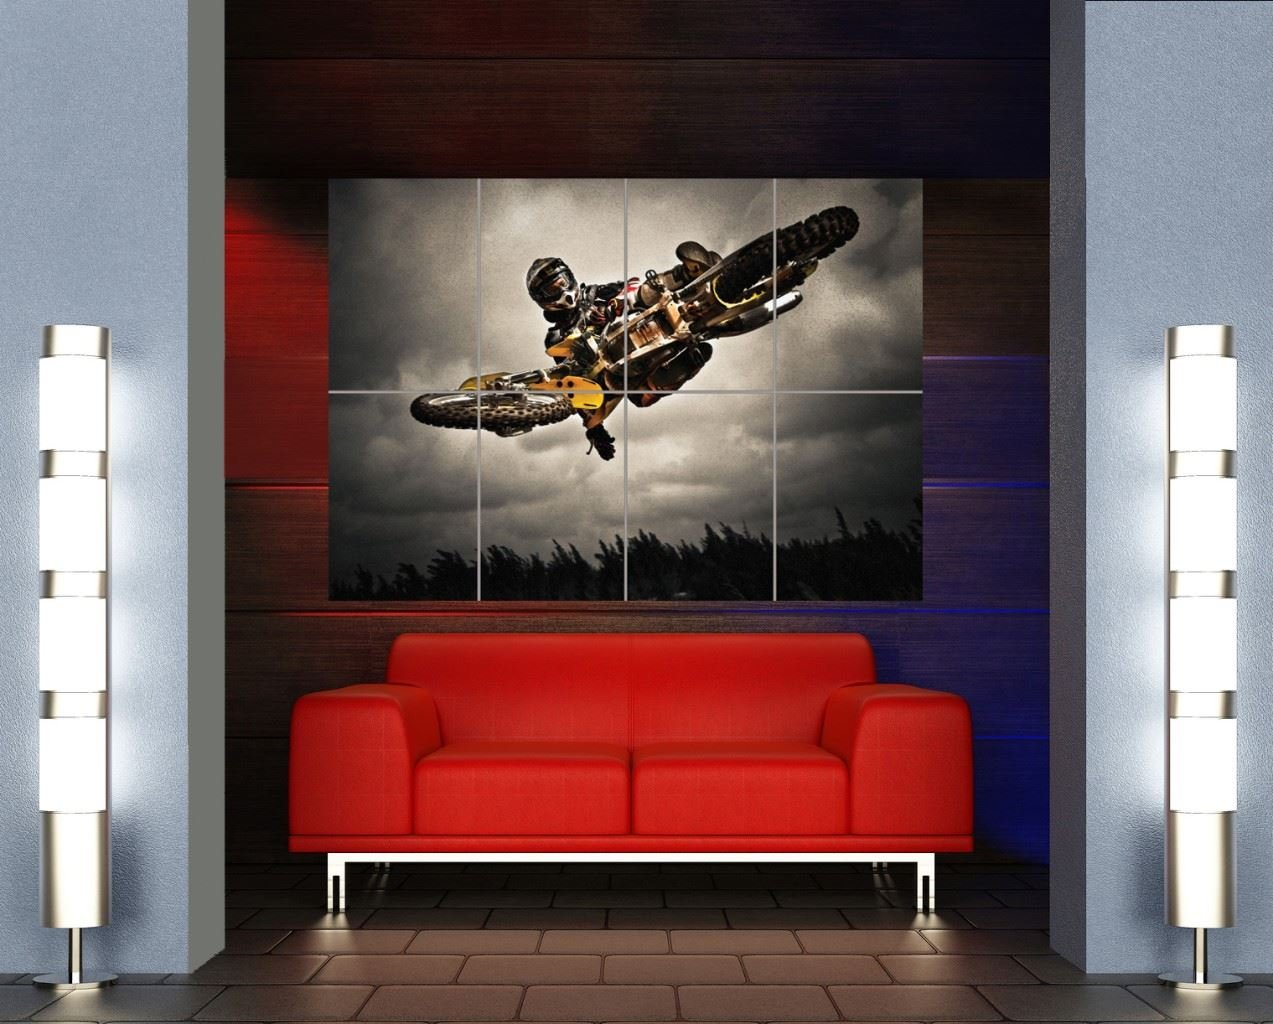 MOTOCROSS STUNT JUMP EXTREME SPORT GIANT ART PRINT POSTER MR127 by Doppelganger33LTD